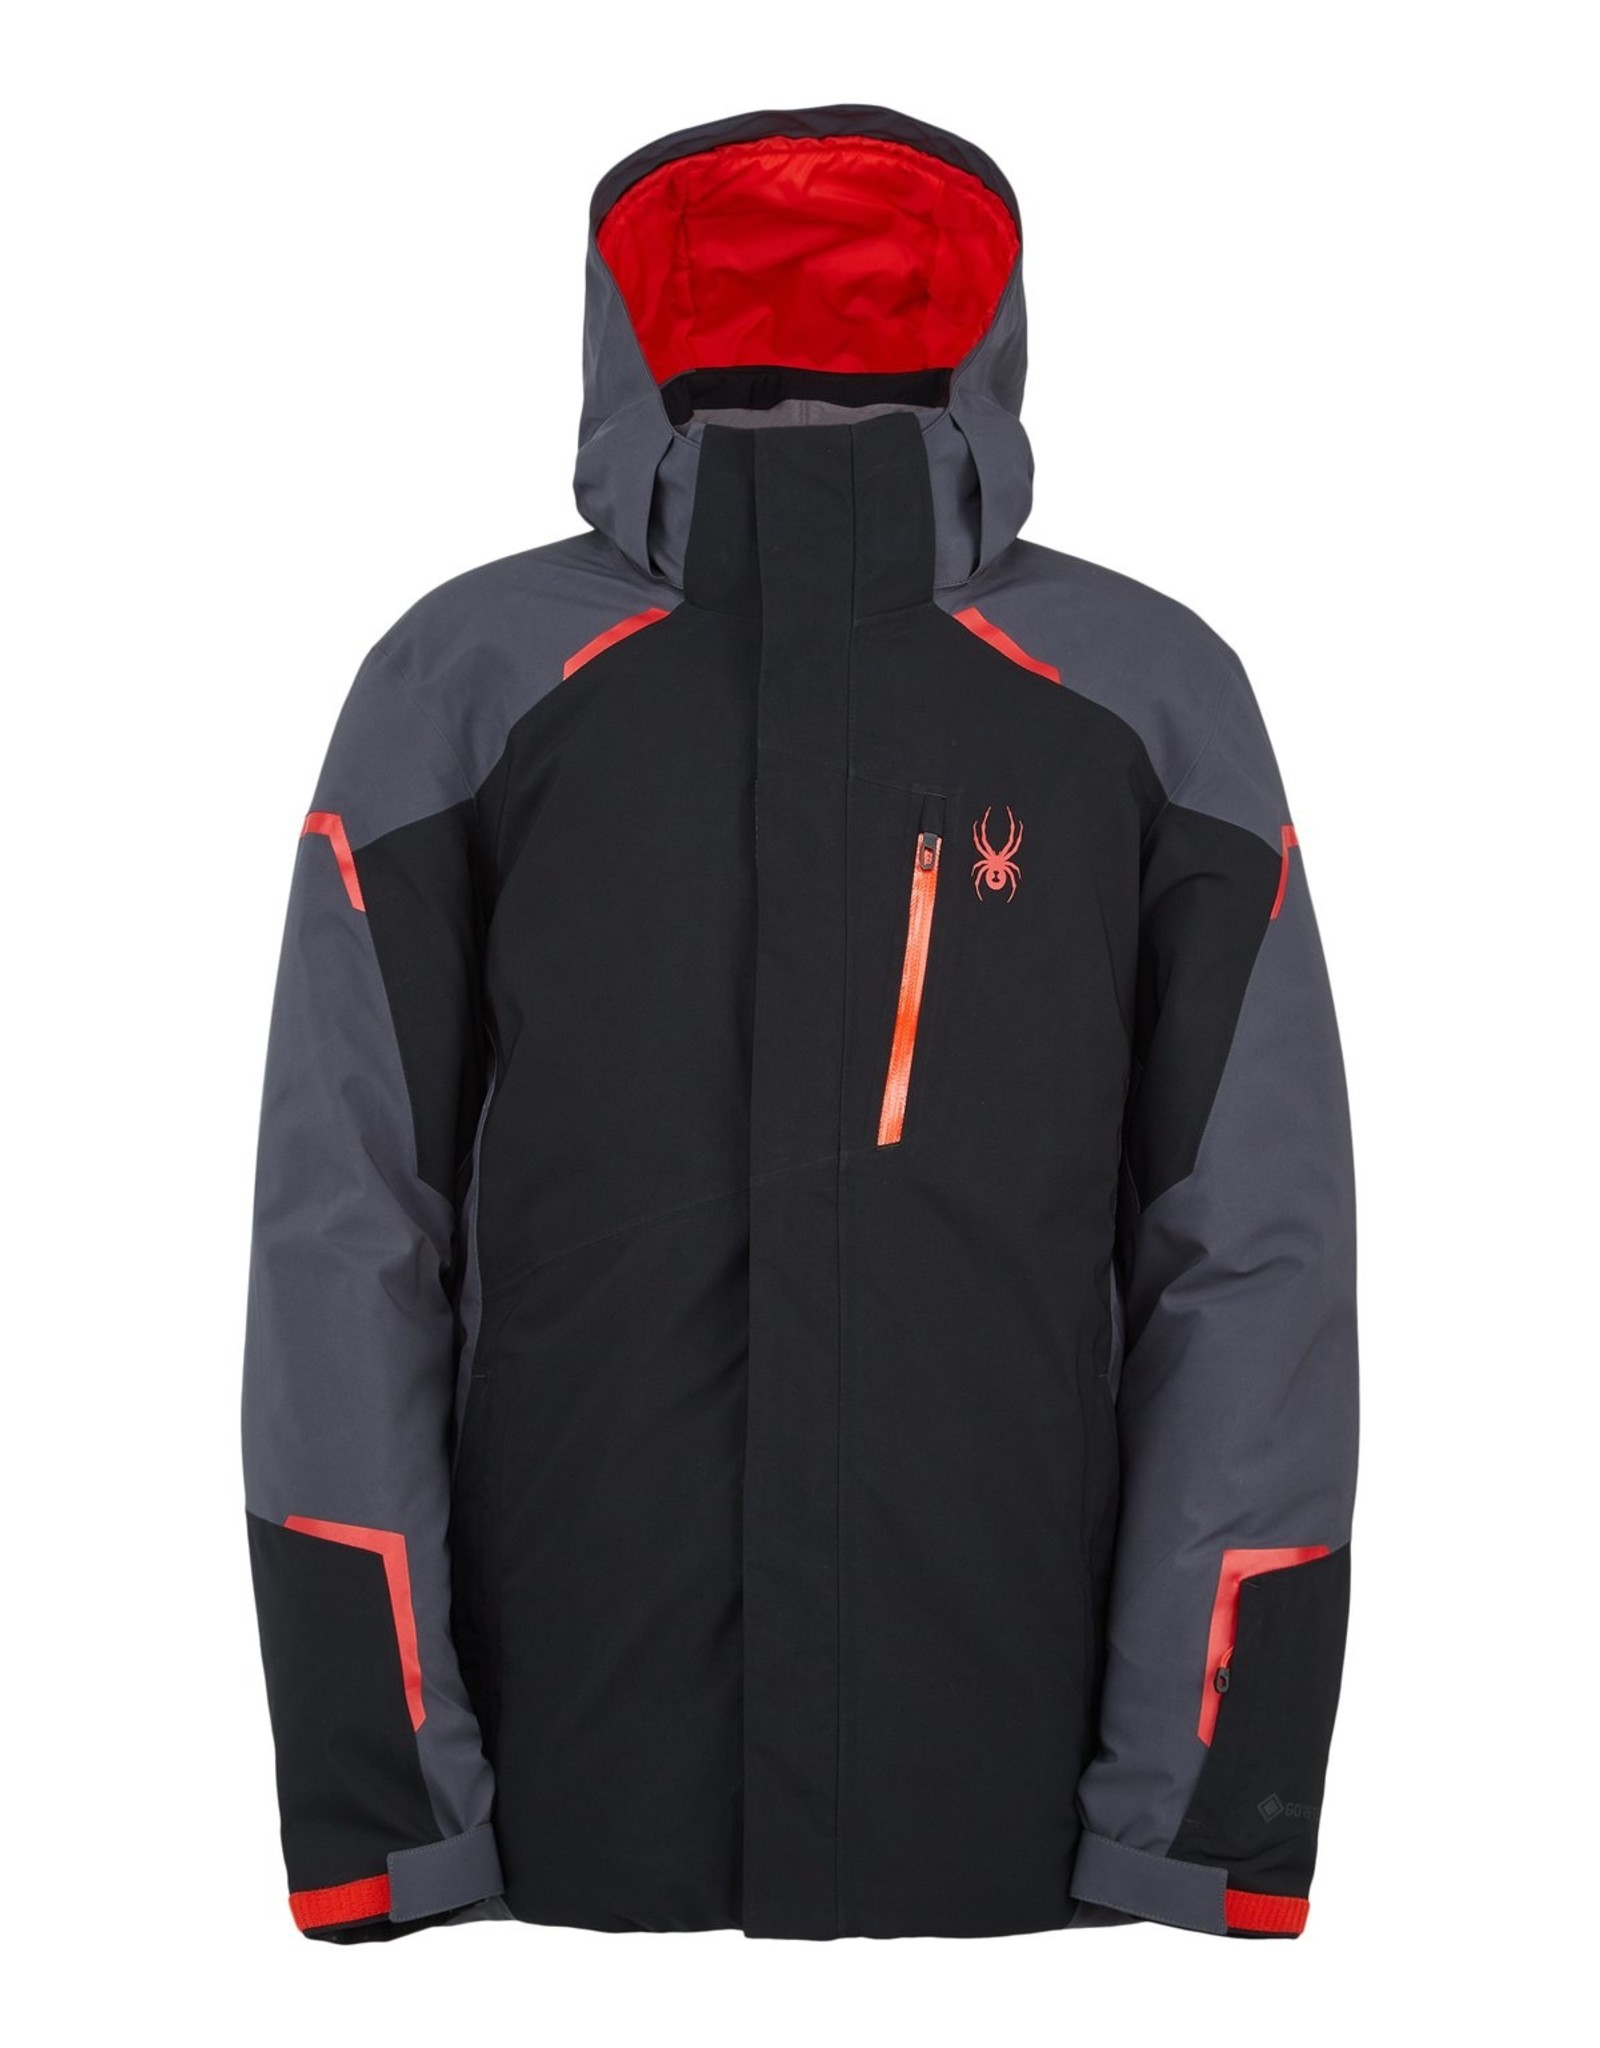 Spyder Spyder Men's Copper GTX Jacket